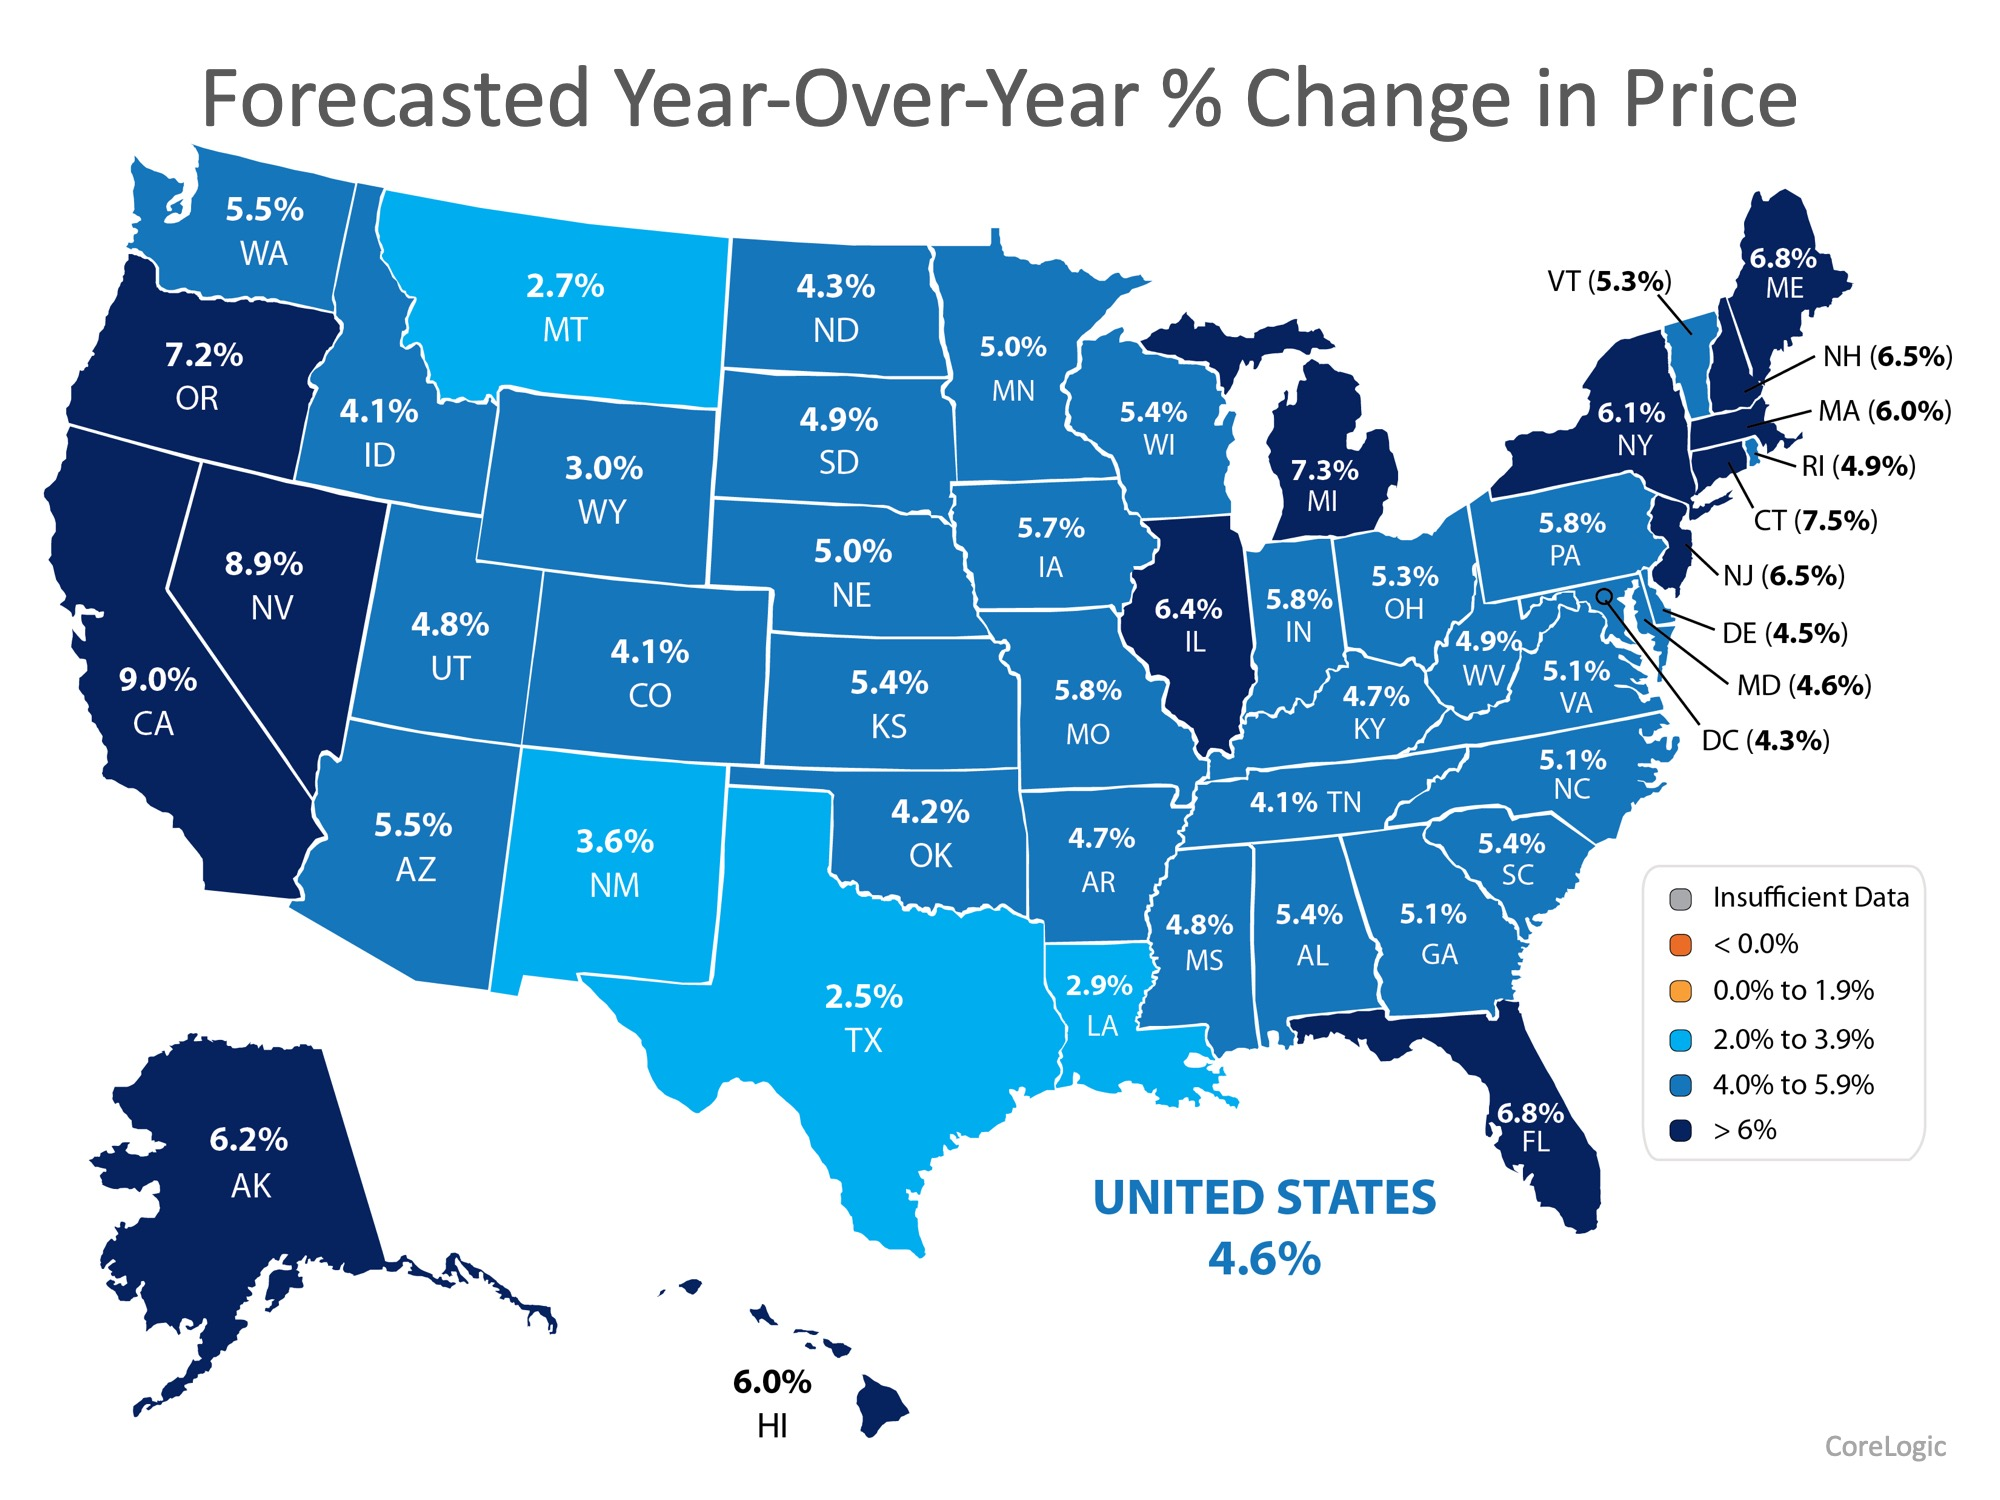 United States Map with Different Colors and Forecasted Percentages for the Year-Over-Year Change in Price